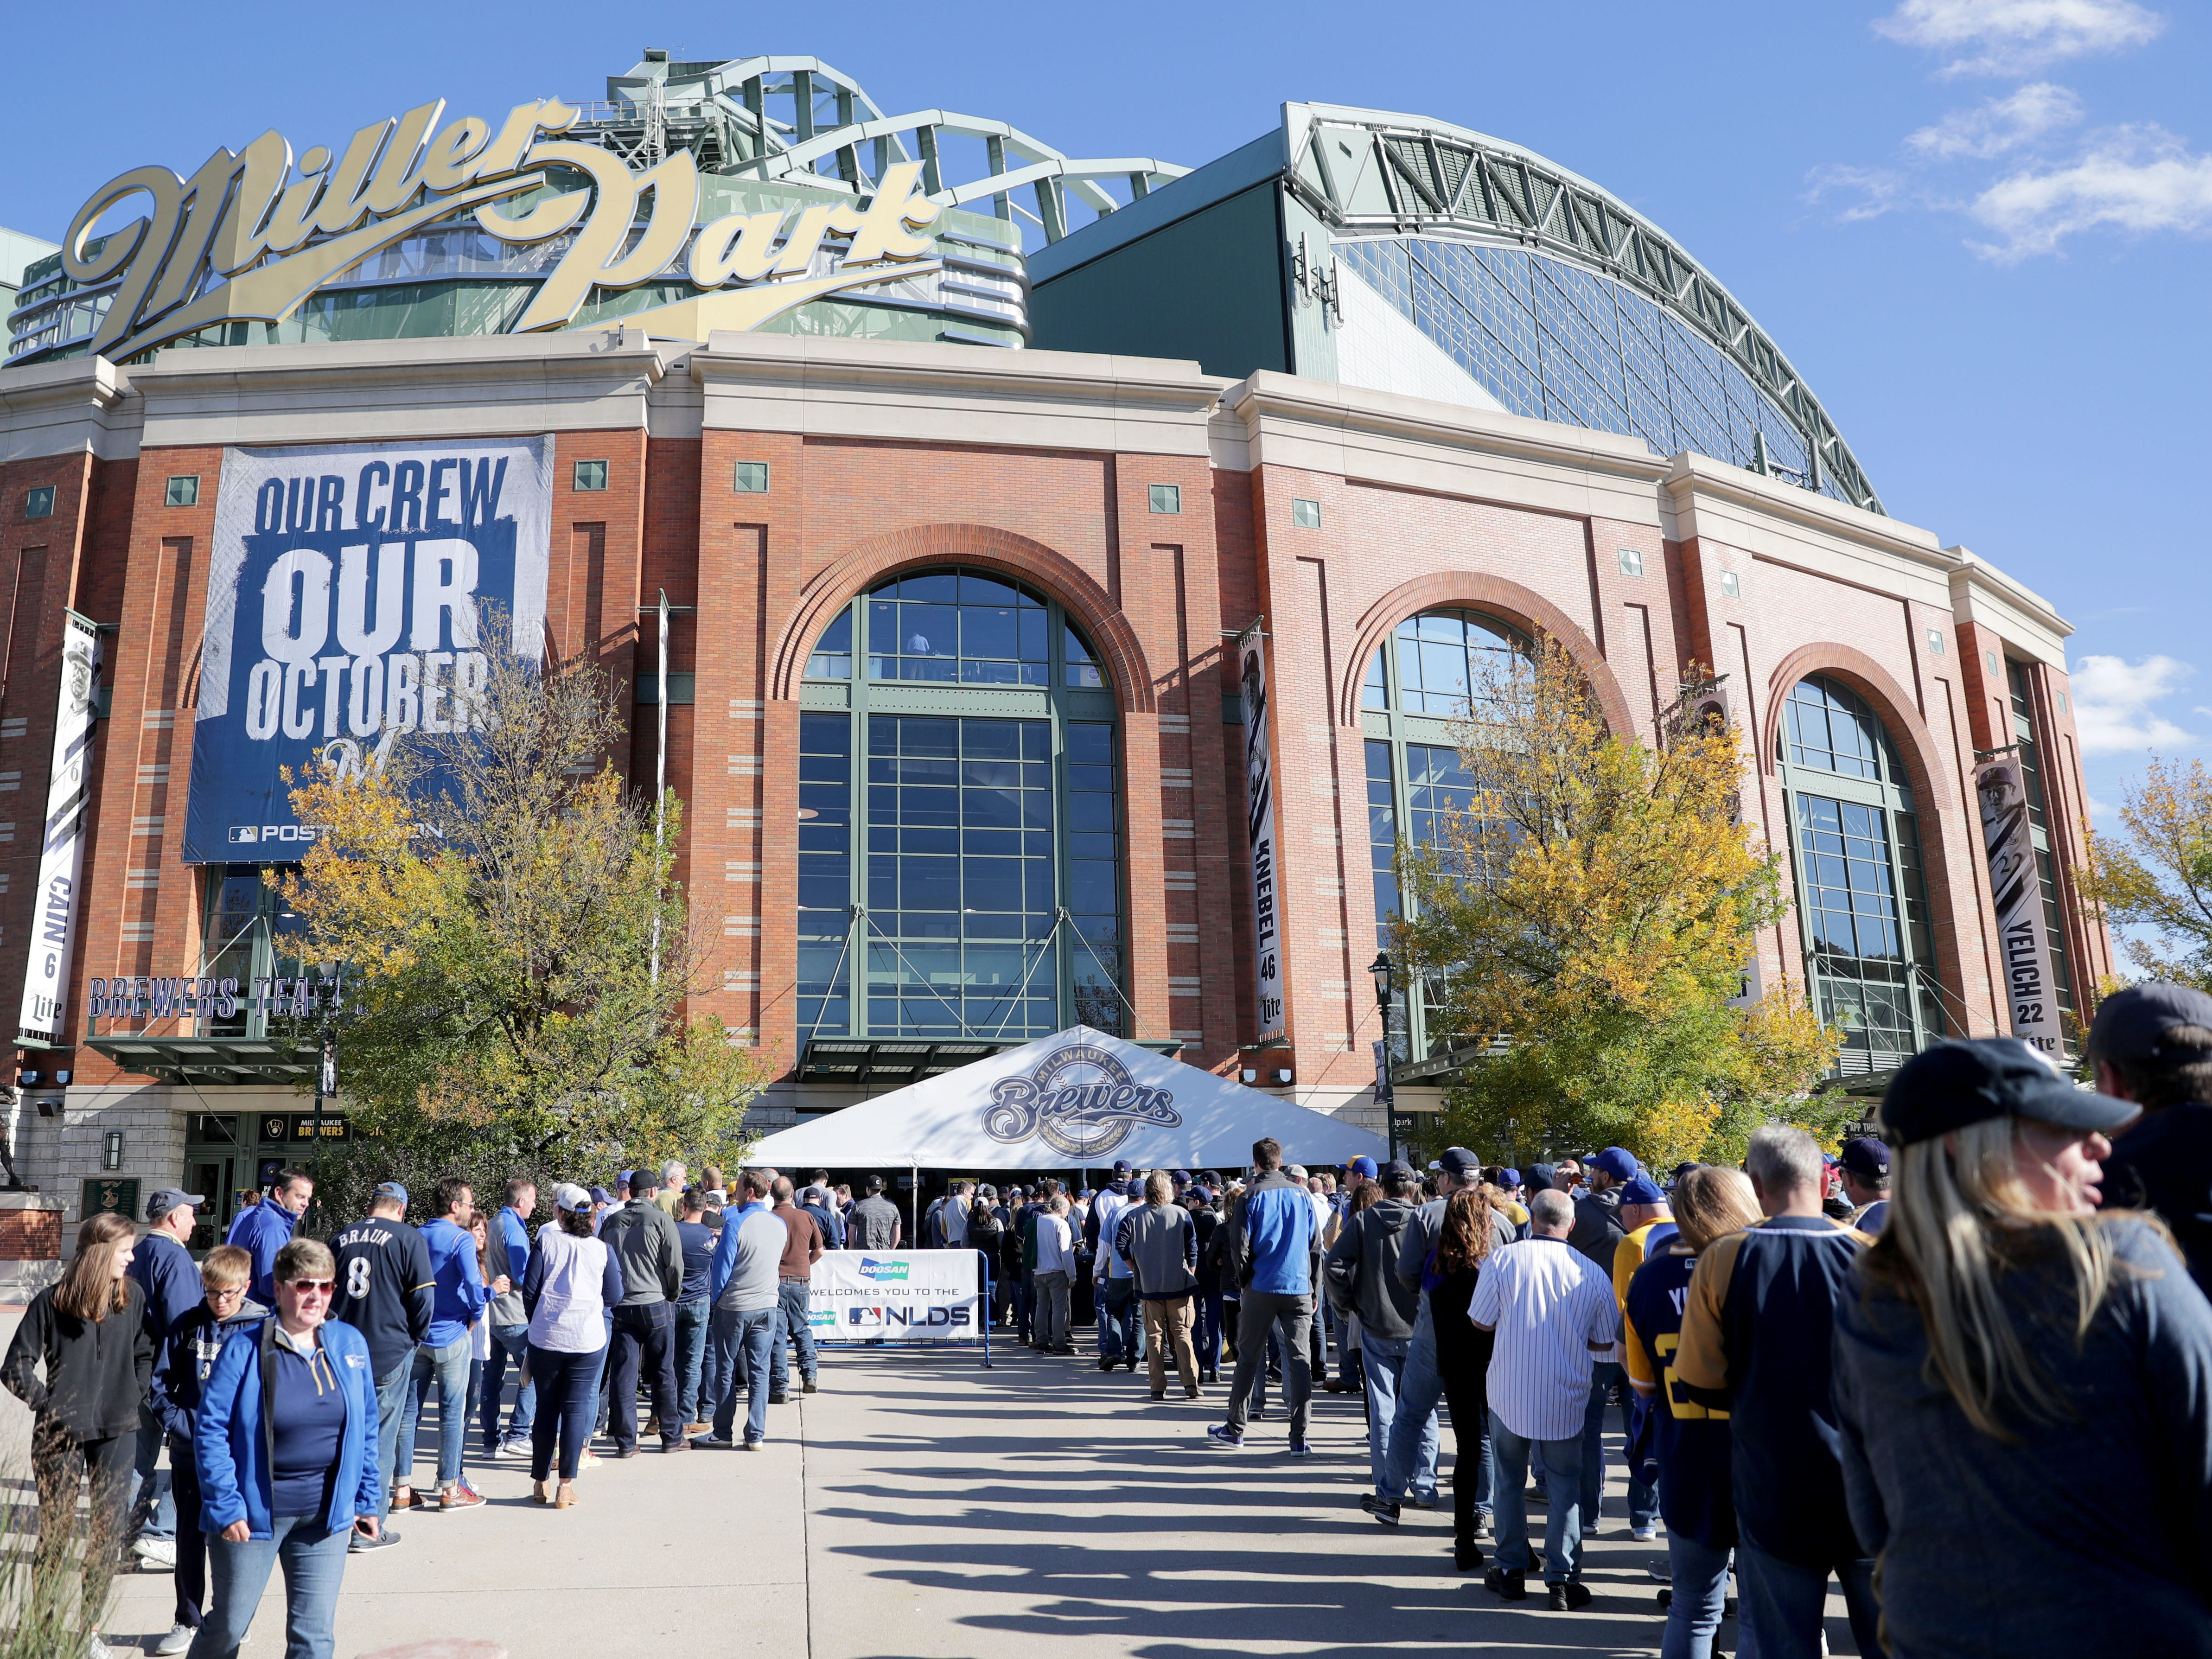 People line up to get into Miller Park  before the Milwaukee Brewers' National League Divisional Series game against the Colorado Rockies on Thursday.